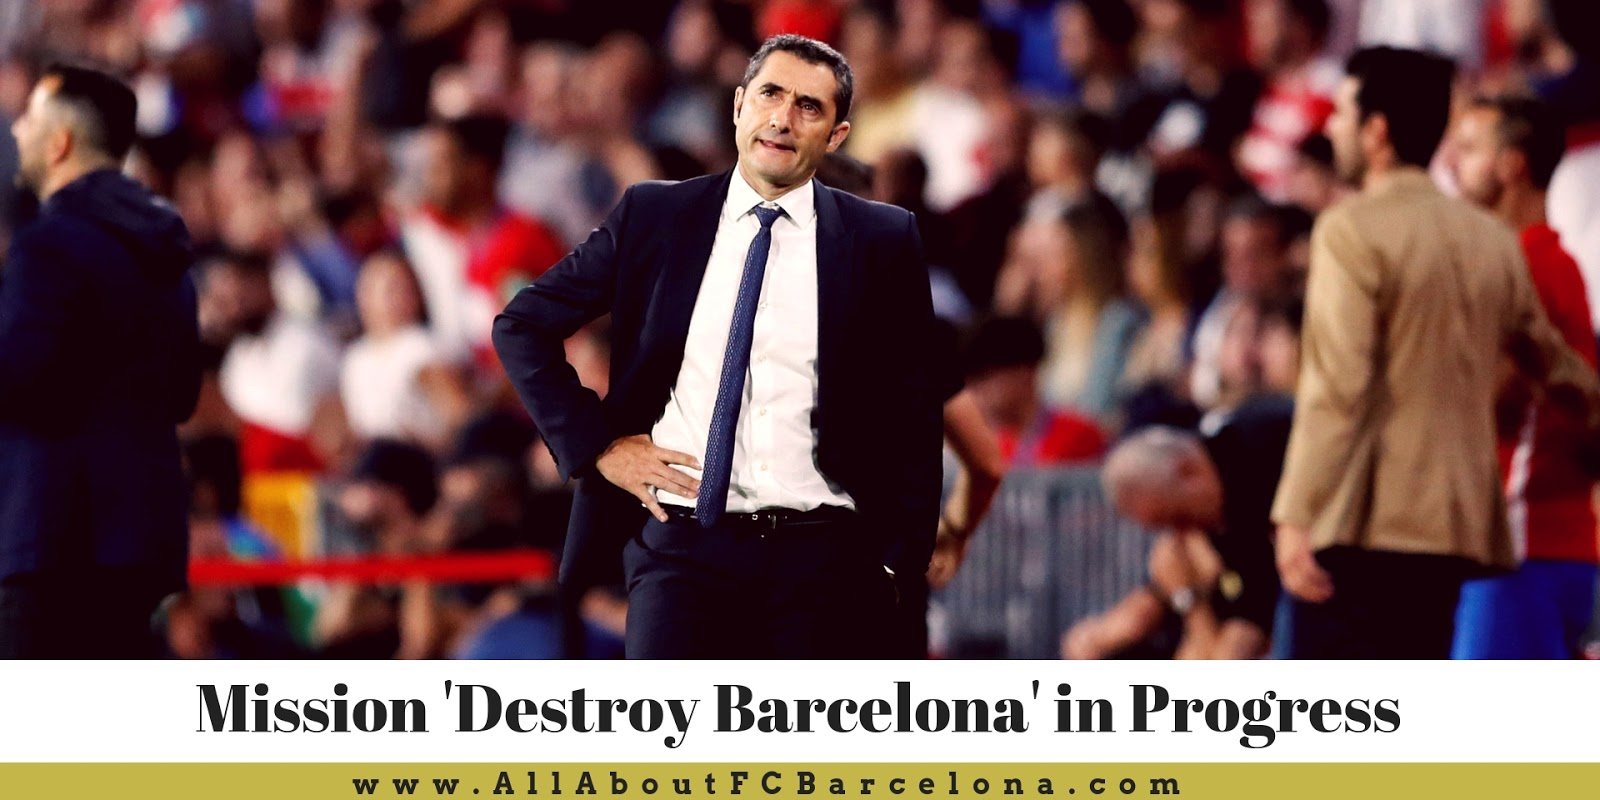 Will Valverde Really be able to Solve Barcelona's Latest Footballing Crisis? #Barca #Messi #ValverdeOUT